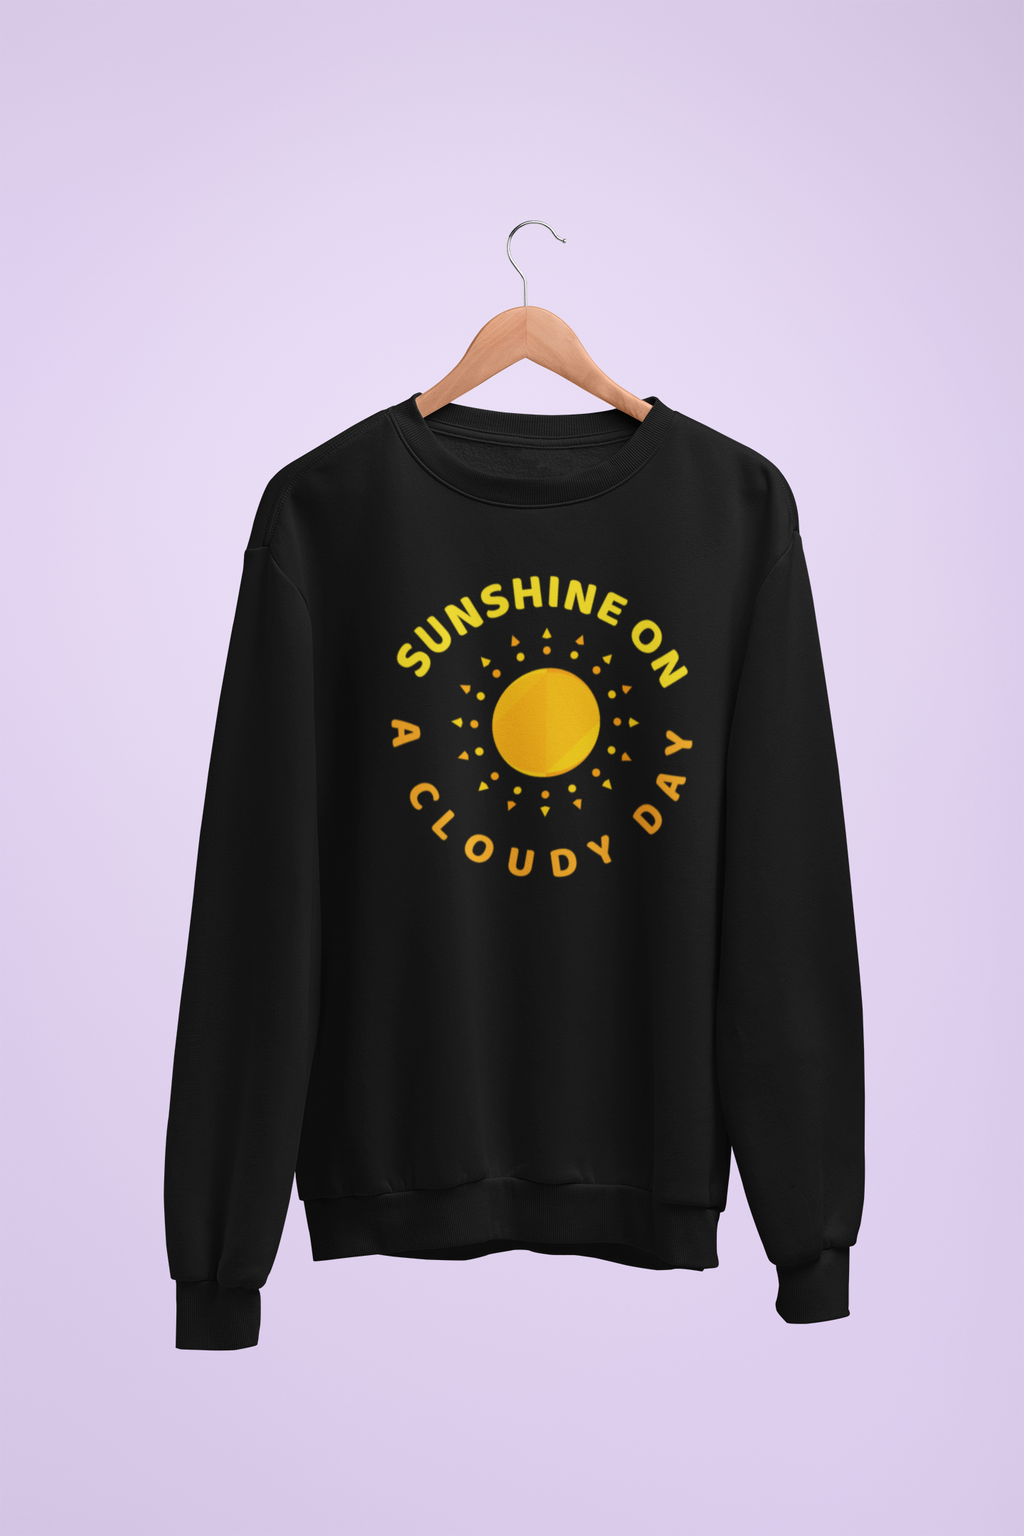 Sunshine on a cloudy day sweatshirt